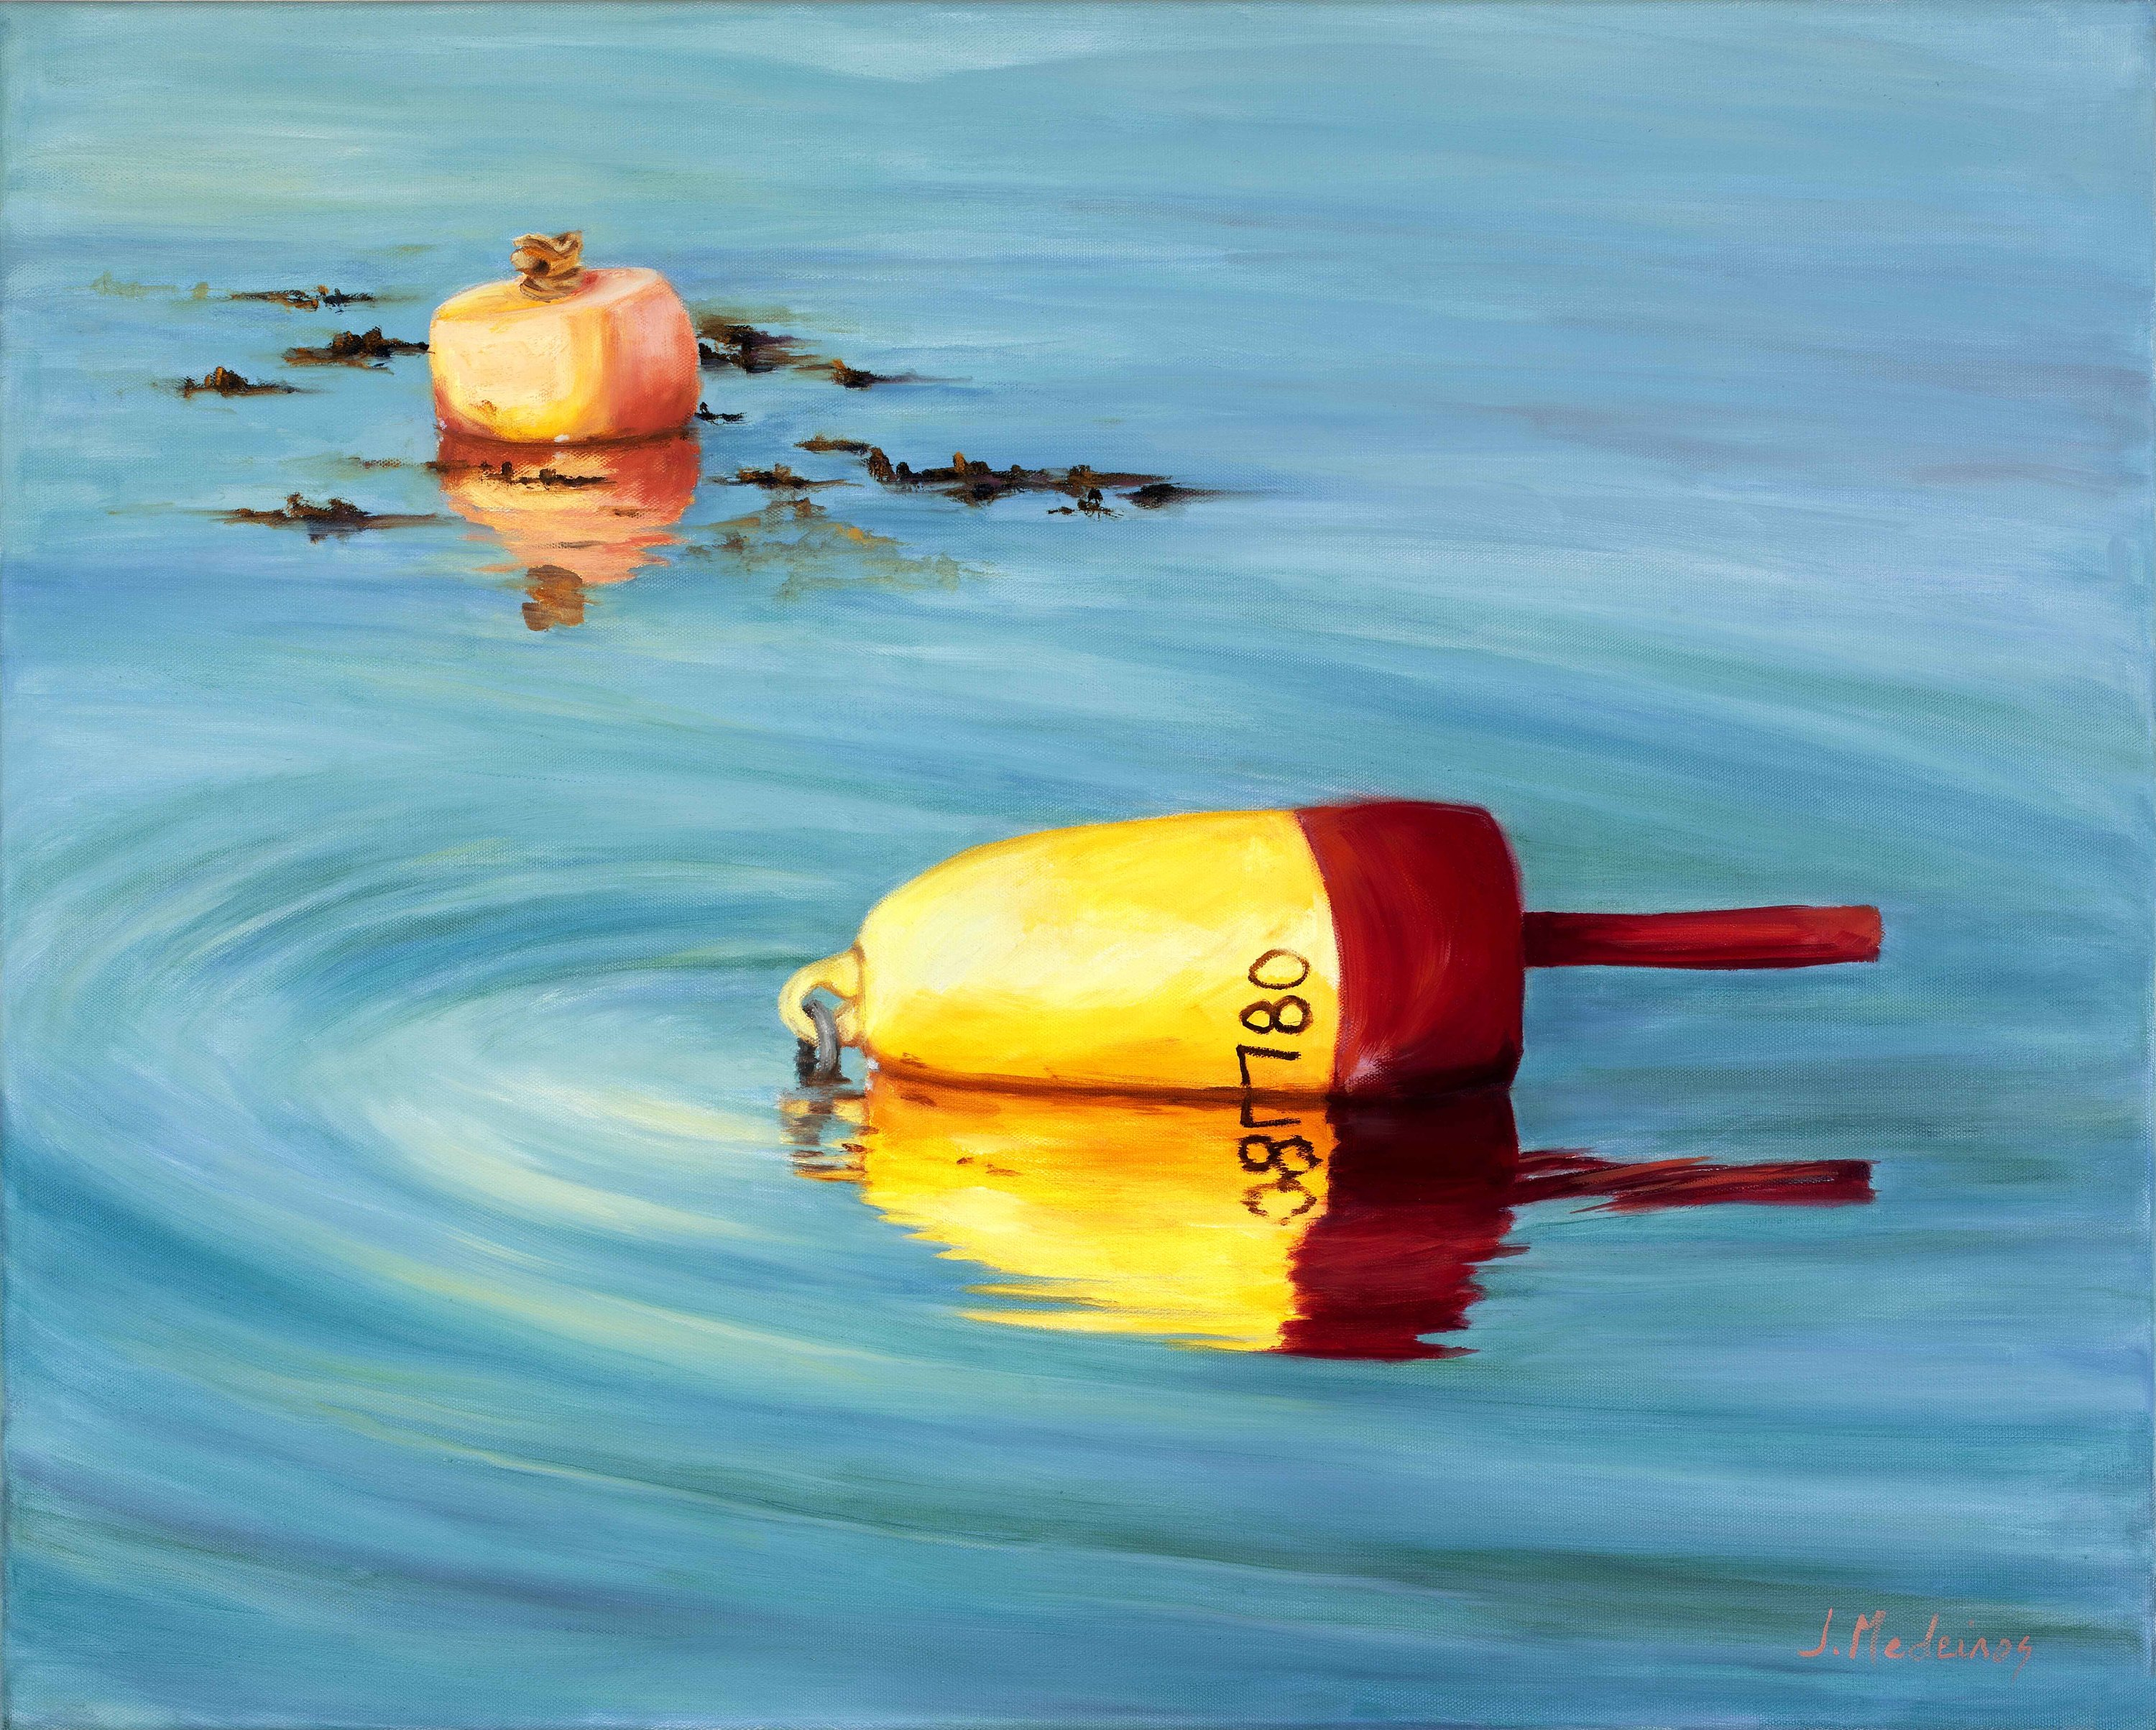 Picture 206 maine lobster bouy 24x30 b flat 89mg sl qogshz